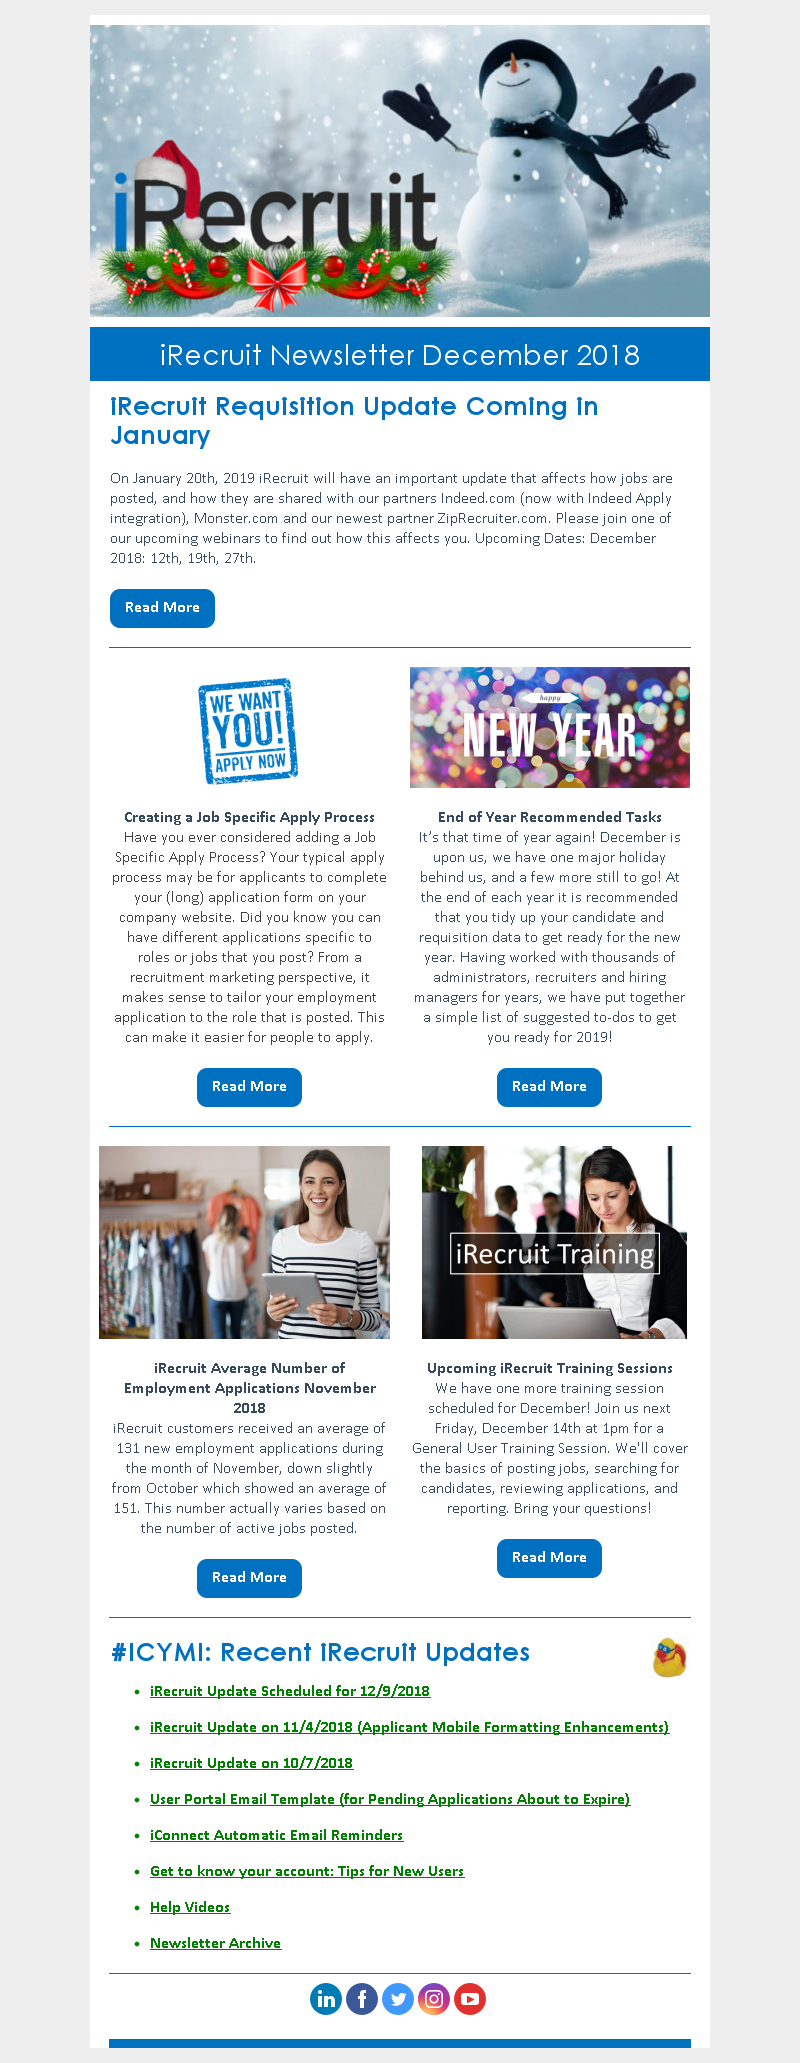 iRecruit Customer Newsletter December 2018